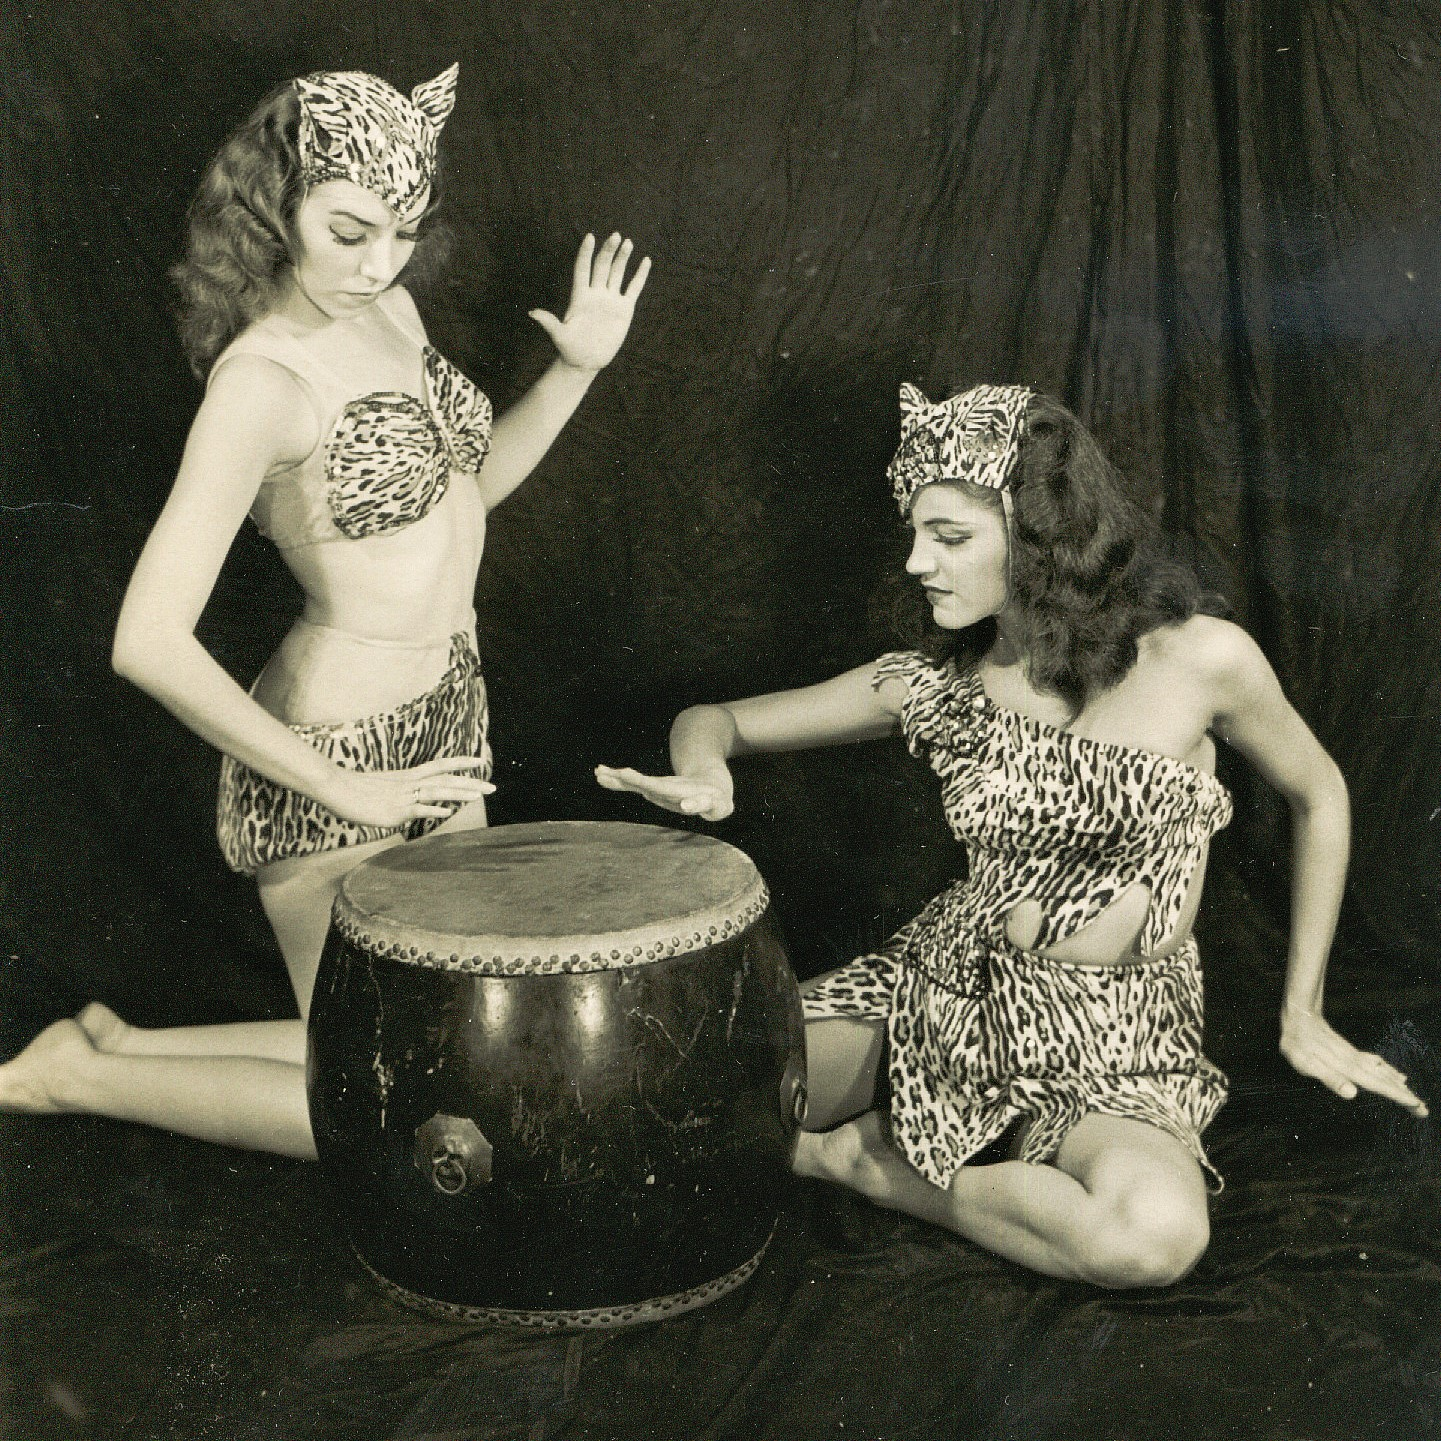 Jungles Drums Johanna and Doris 1940s WV 1.jpg